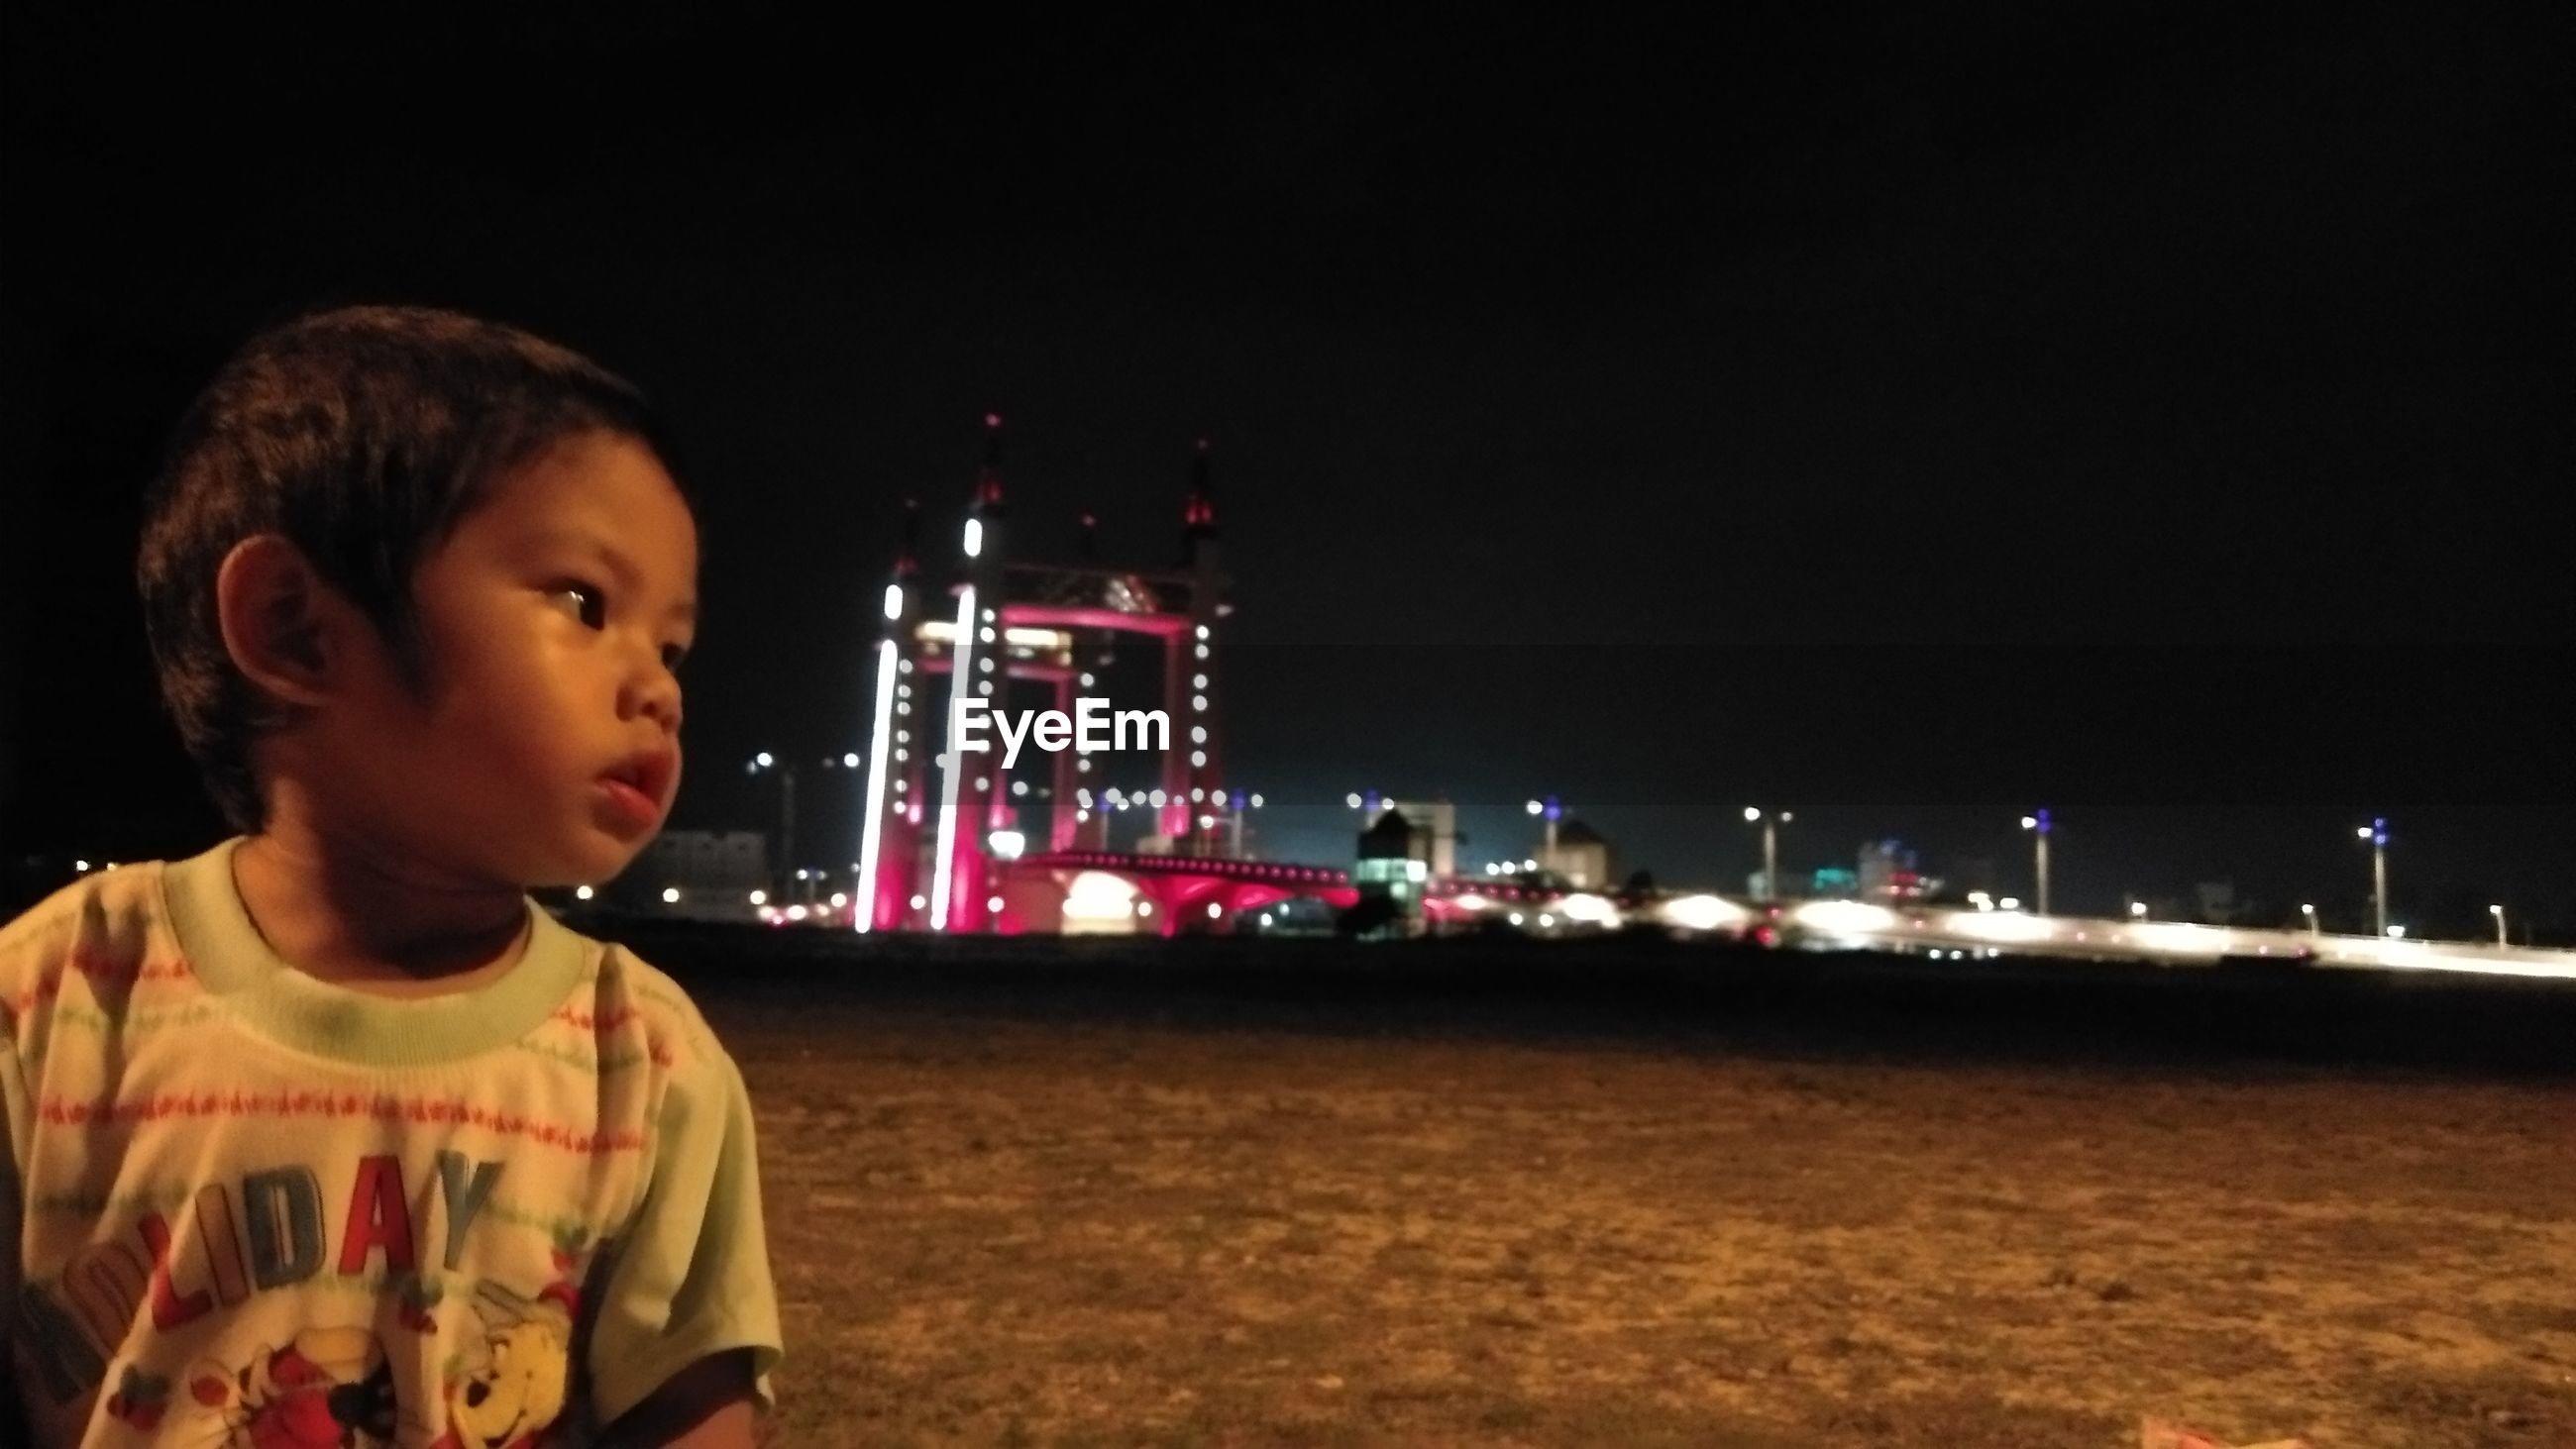 PORTRAIT OF BOY LOOKING AT ILLUMINATED PARK AGAINST SKY AT NIGHT AT DUSK